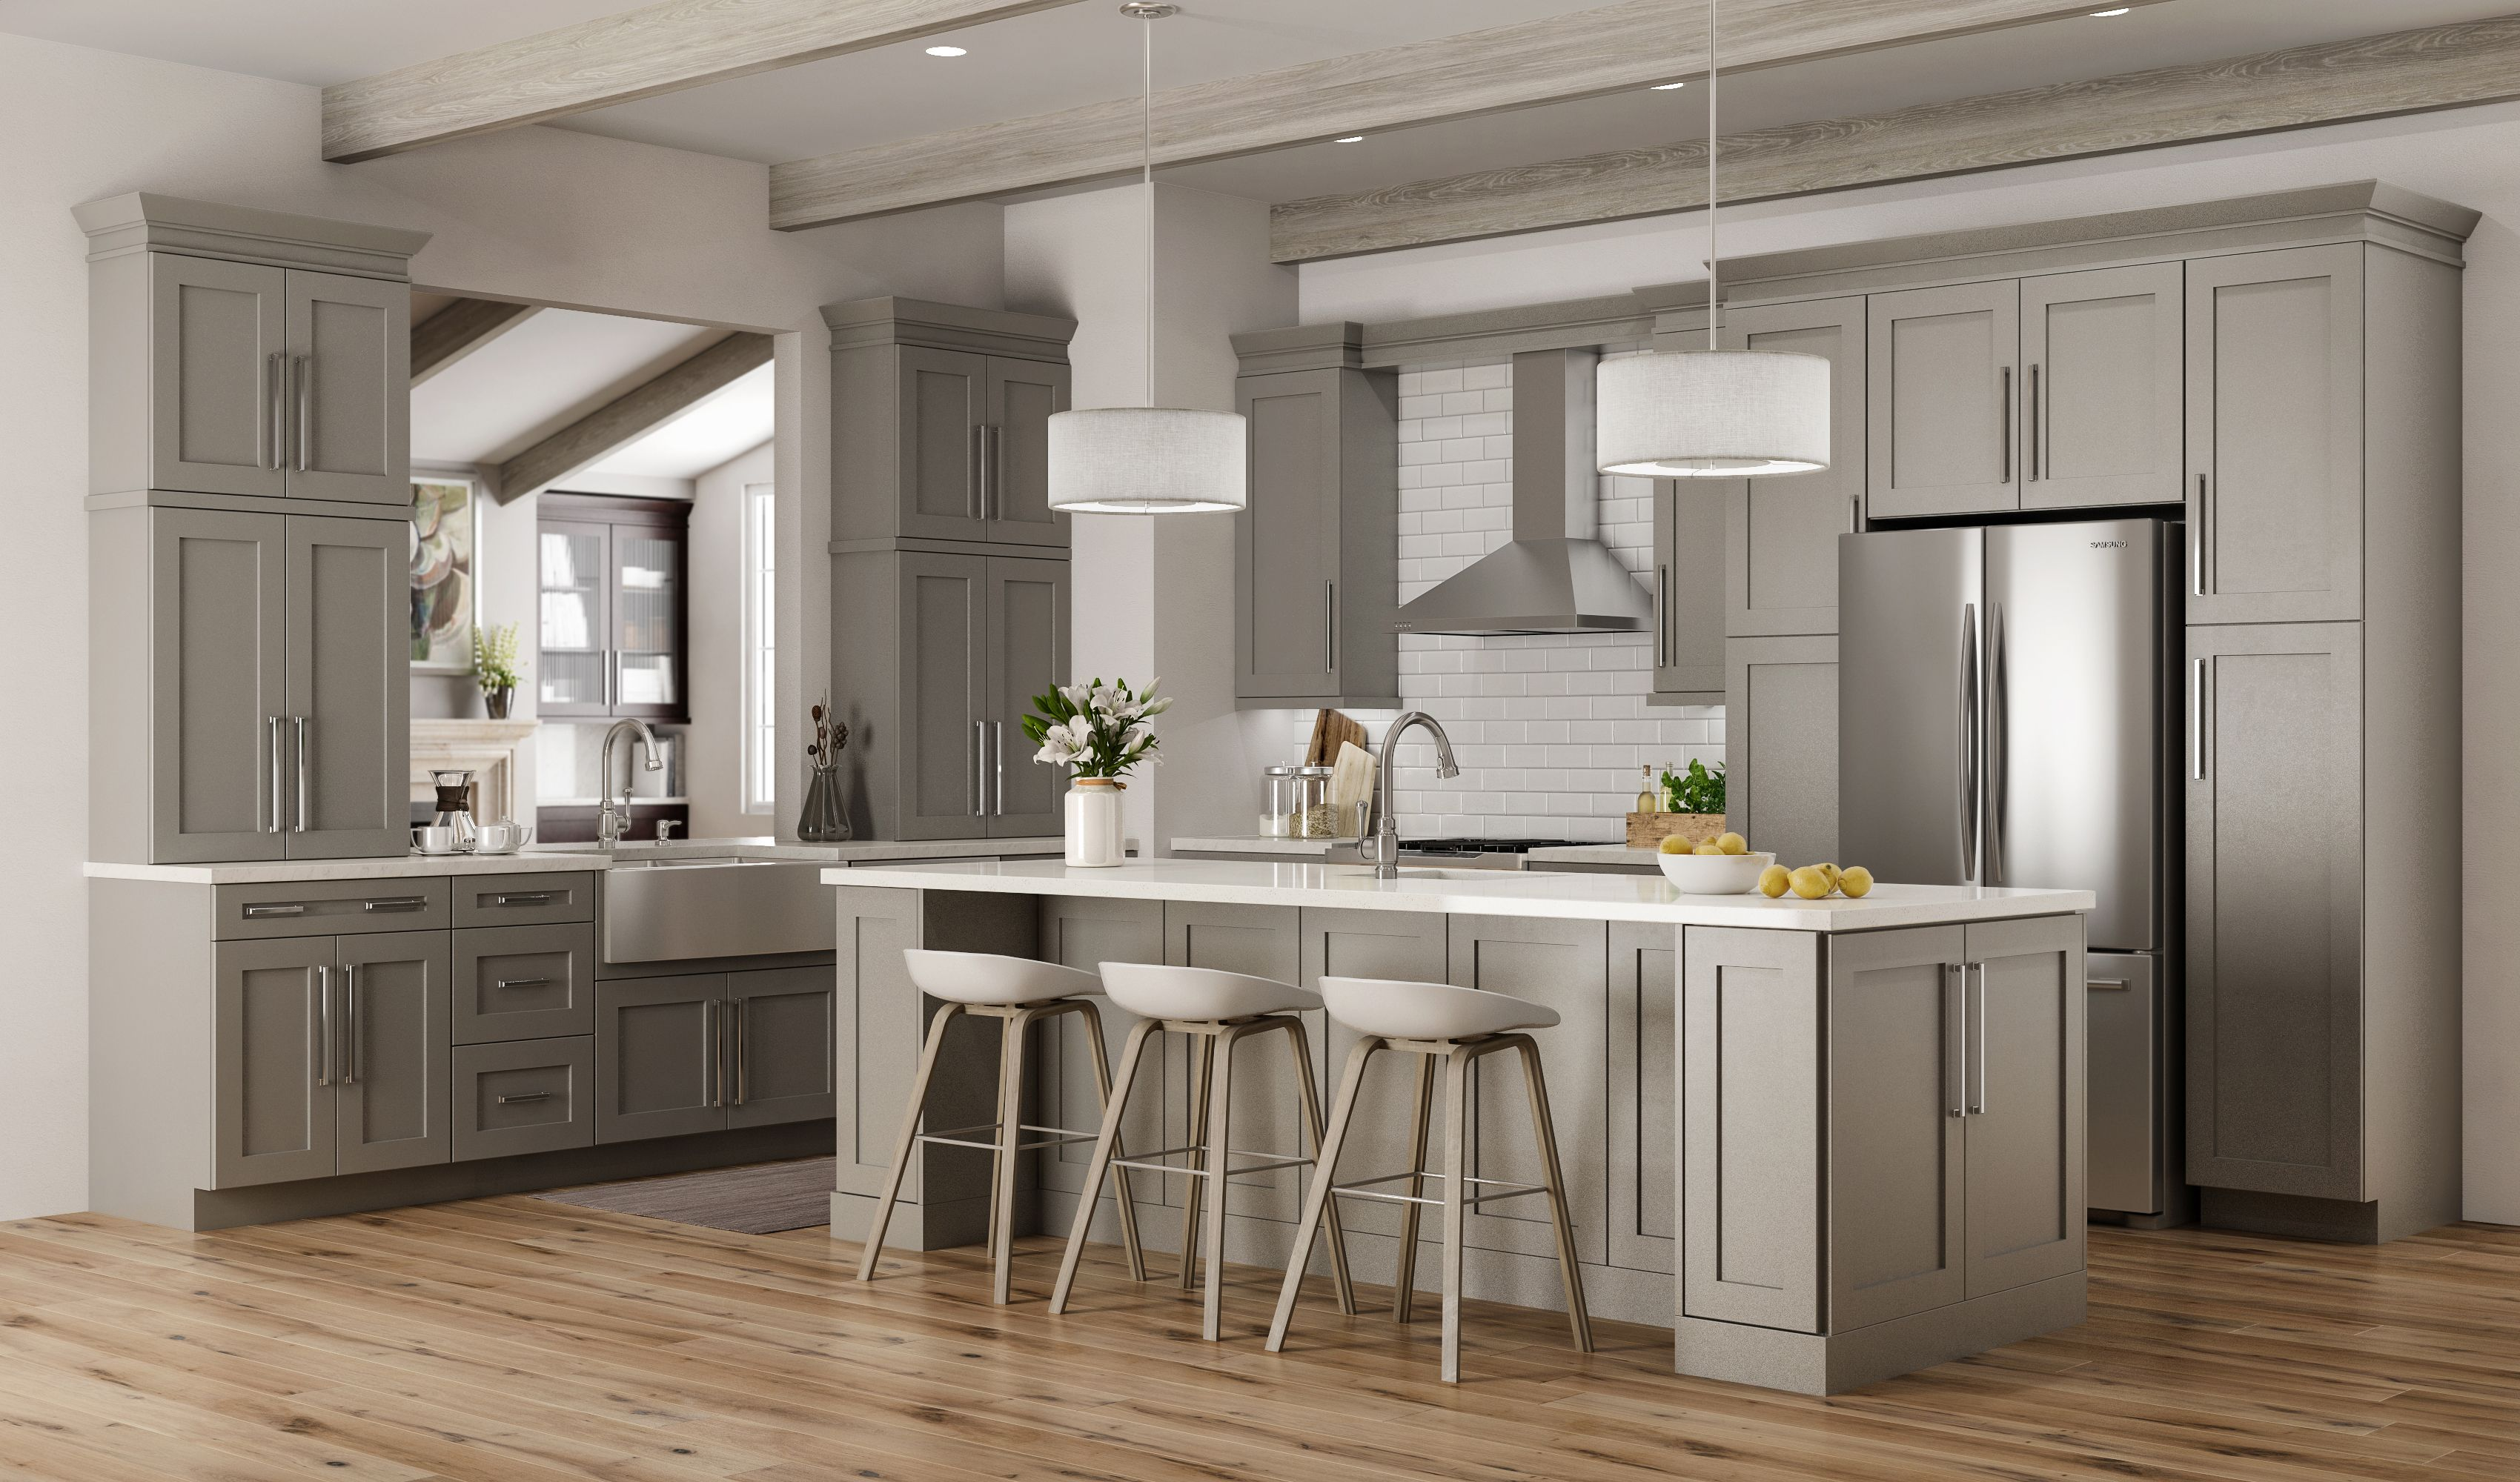 American Woodmark Pcs Professional Cabinet Solutions Designer Kitchen Cabinetry Kcma Certified Cabinets Kitchen Design Kitchen Cabinetry Cabinetry